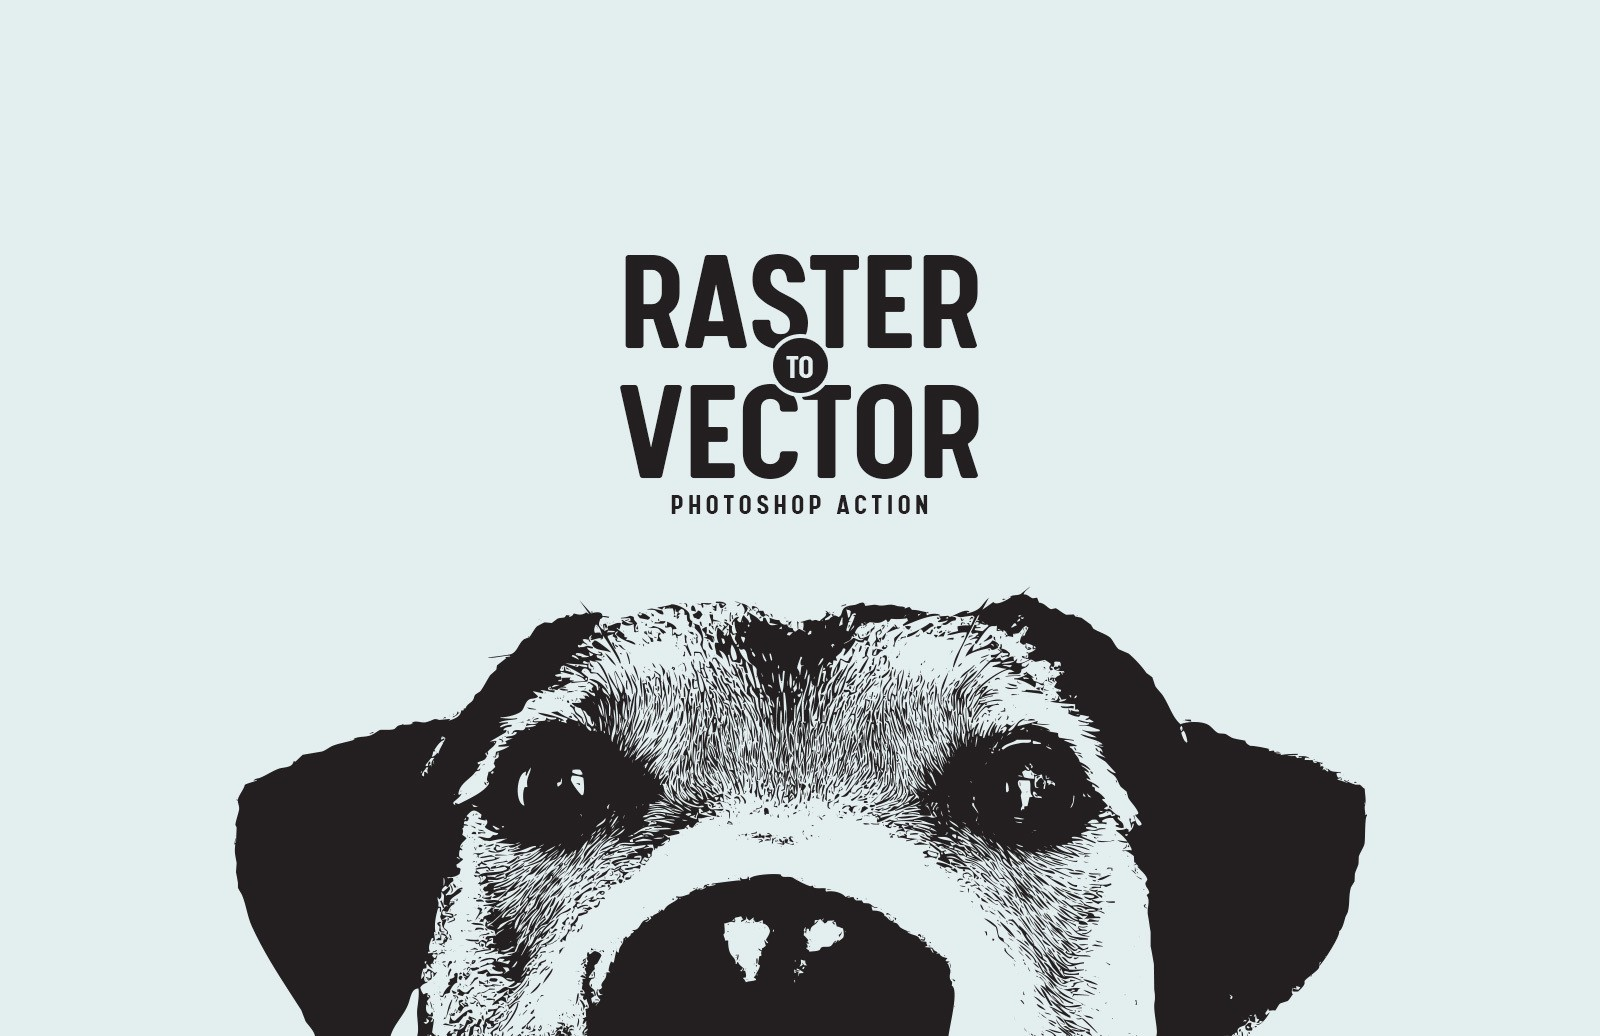 Raster to Vector Photoshop Action